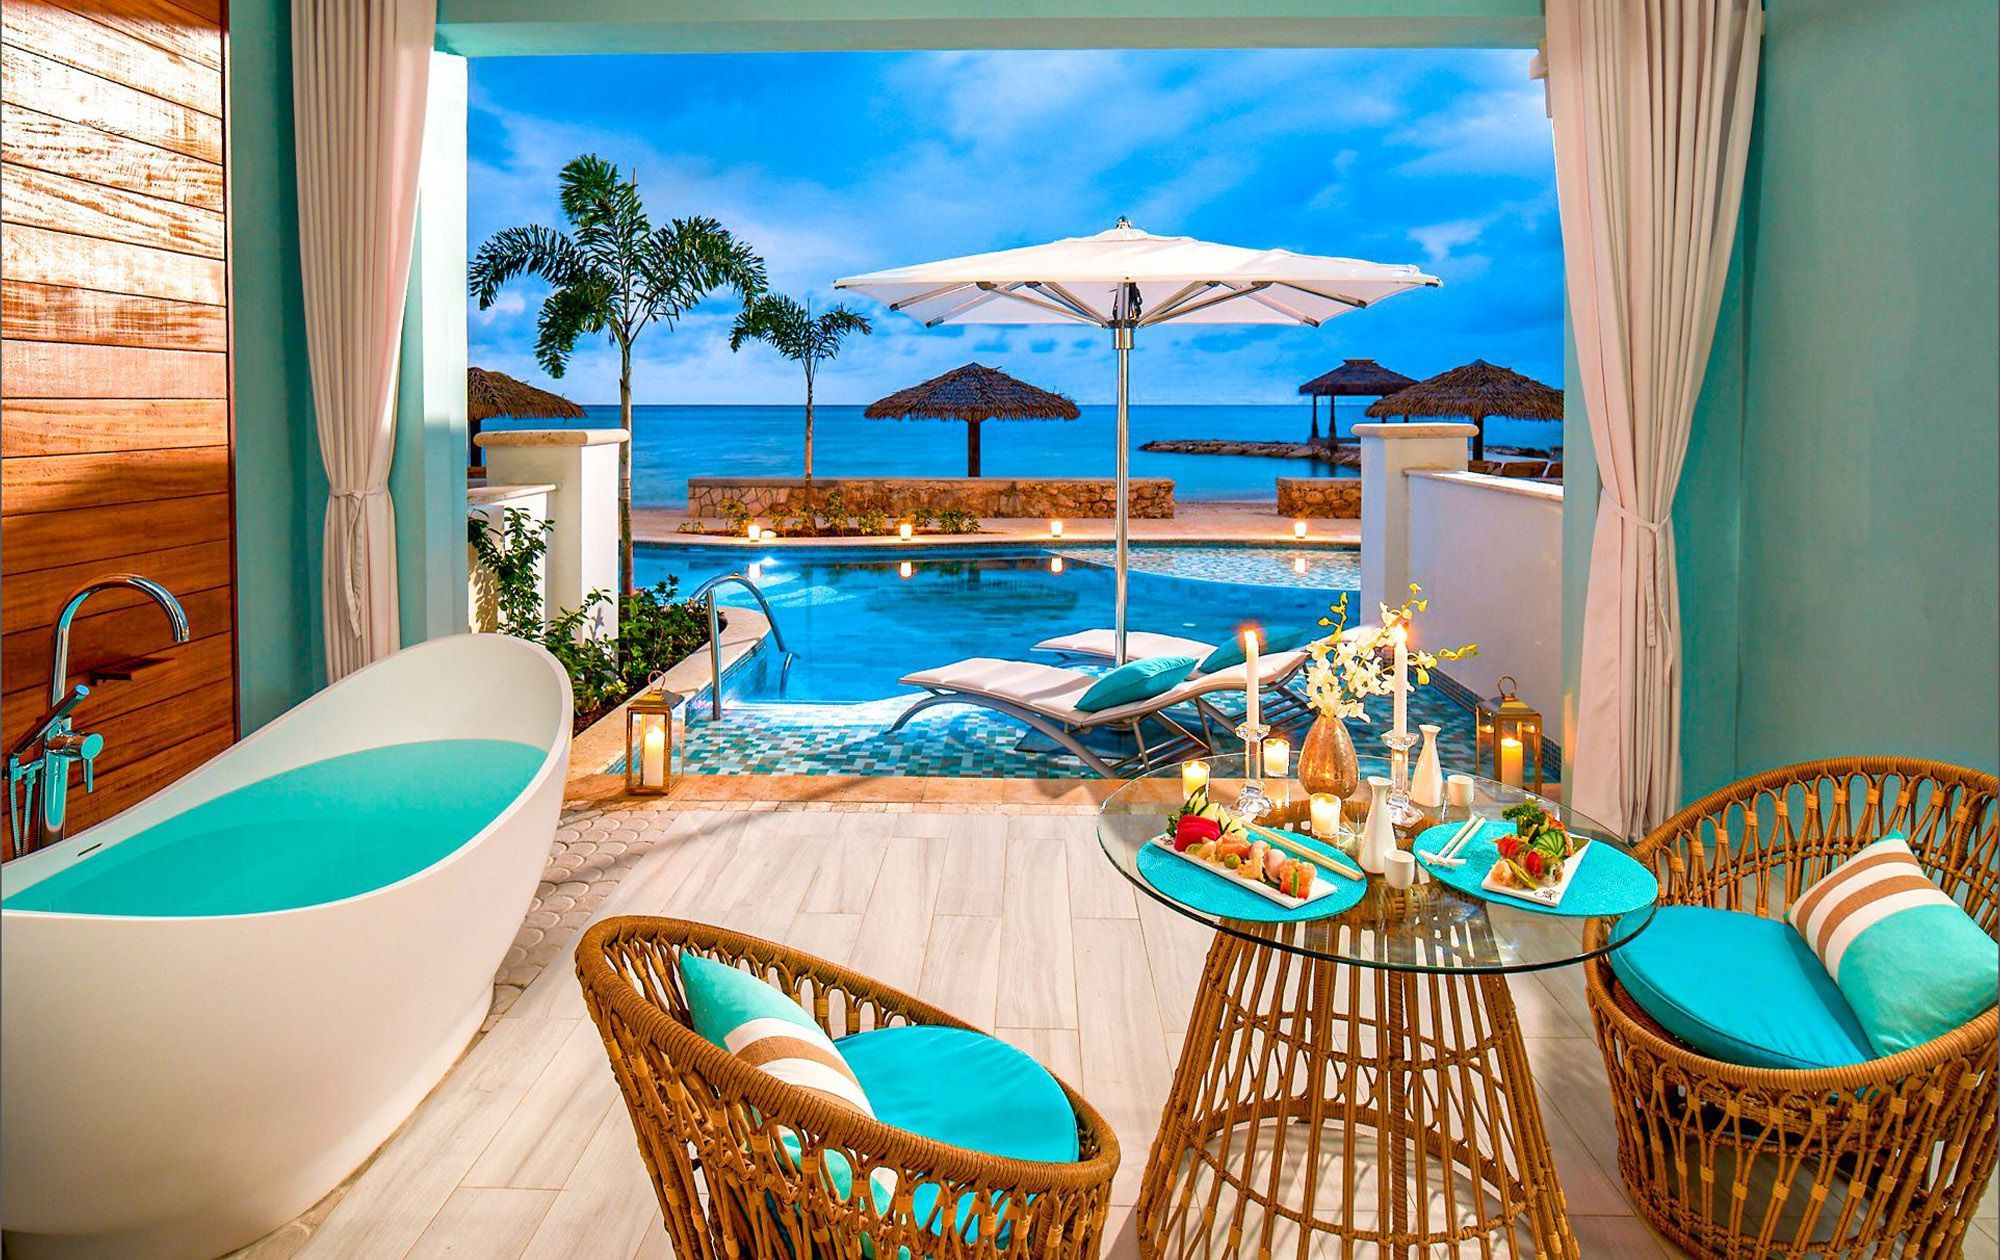 Beachfront Swim-Up Millionaire One-Bedroom-Butler Suite